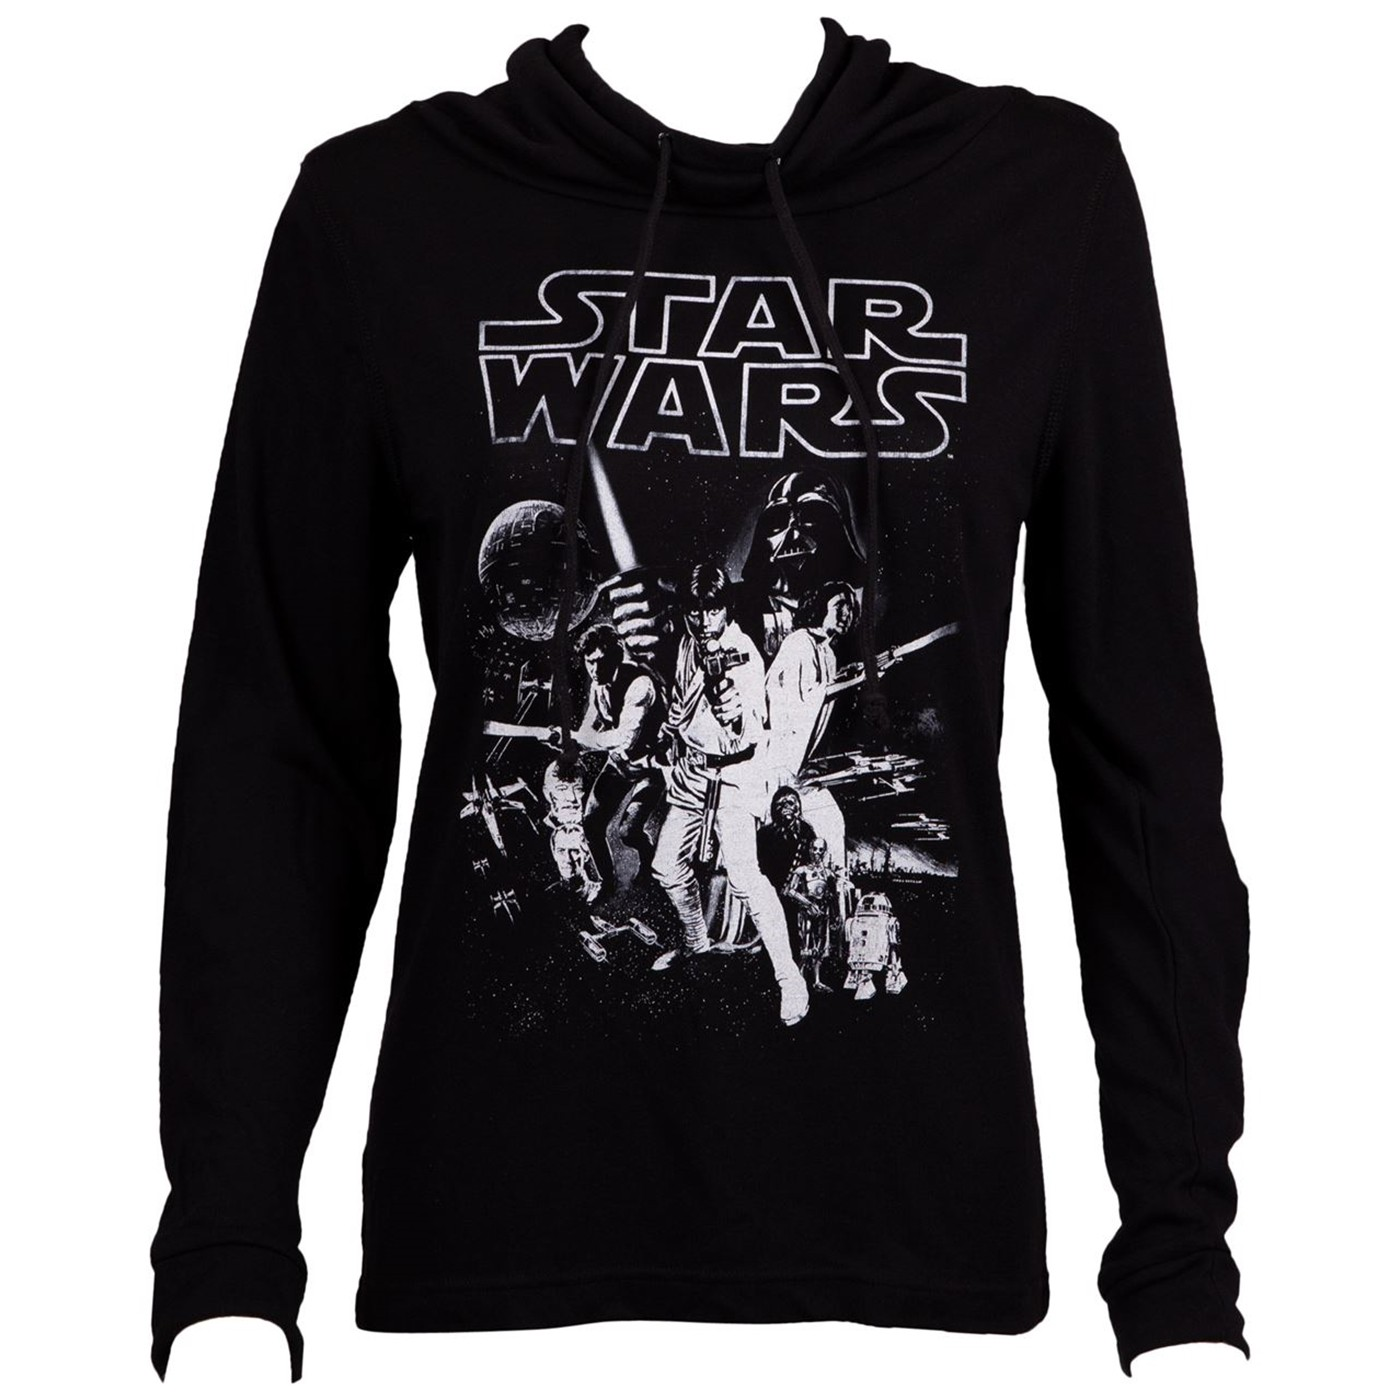 Star Wars New Hope Poster Long Sleeve Women's T-Shirt